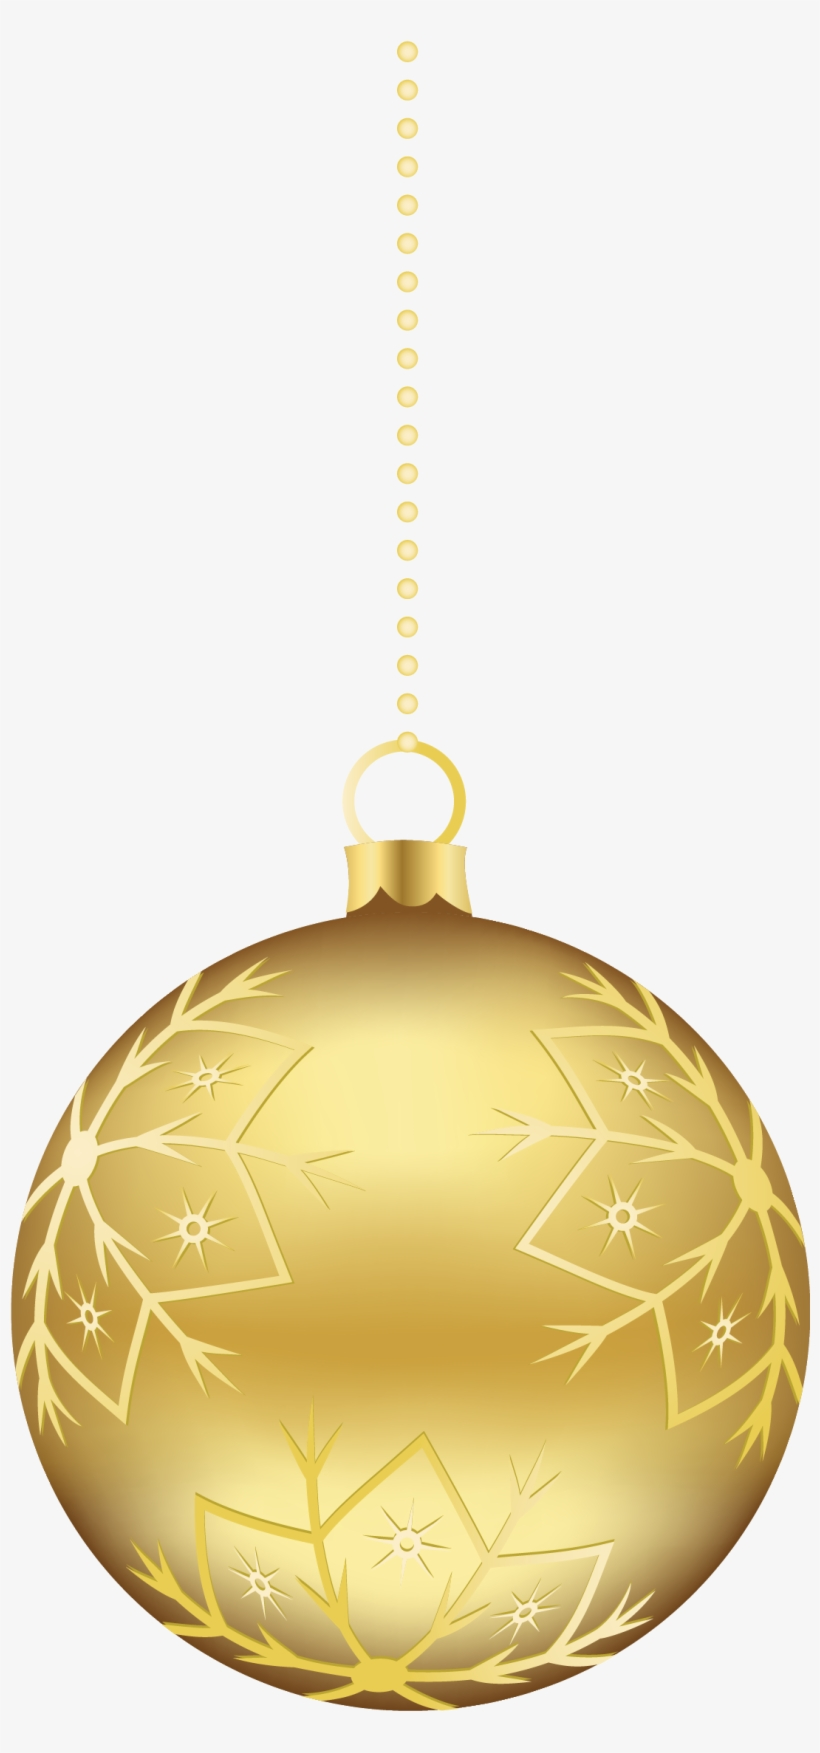 Free Icons Png - Png Christmas Ball Ornaments, transparent png #282591